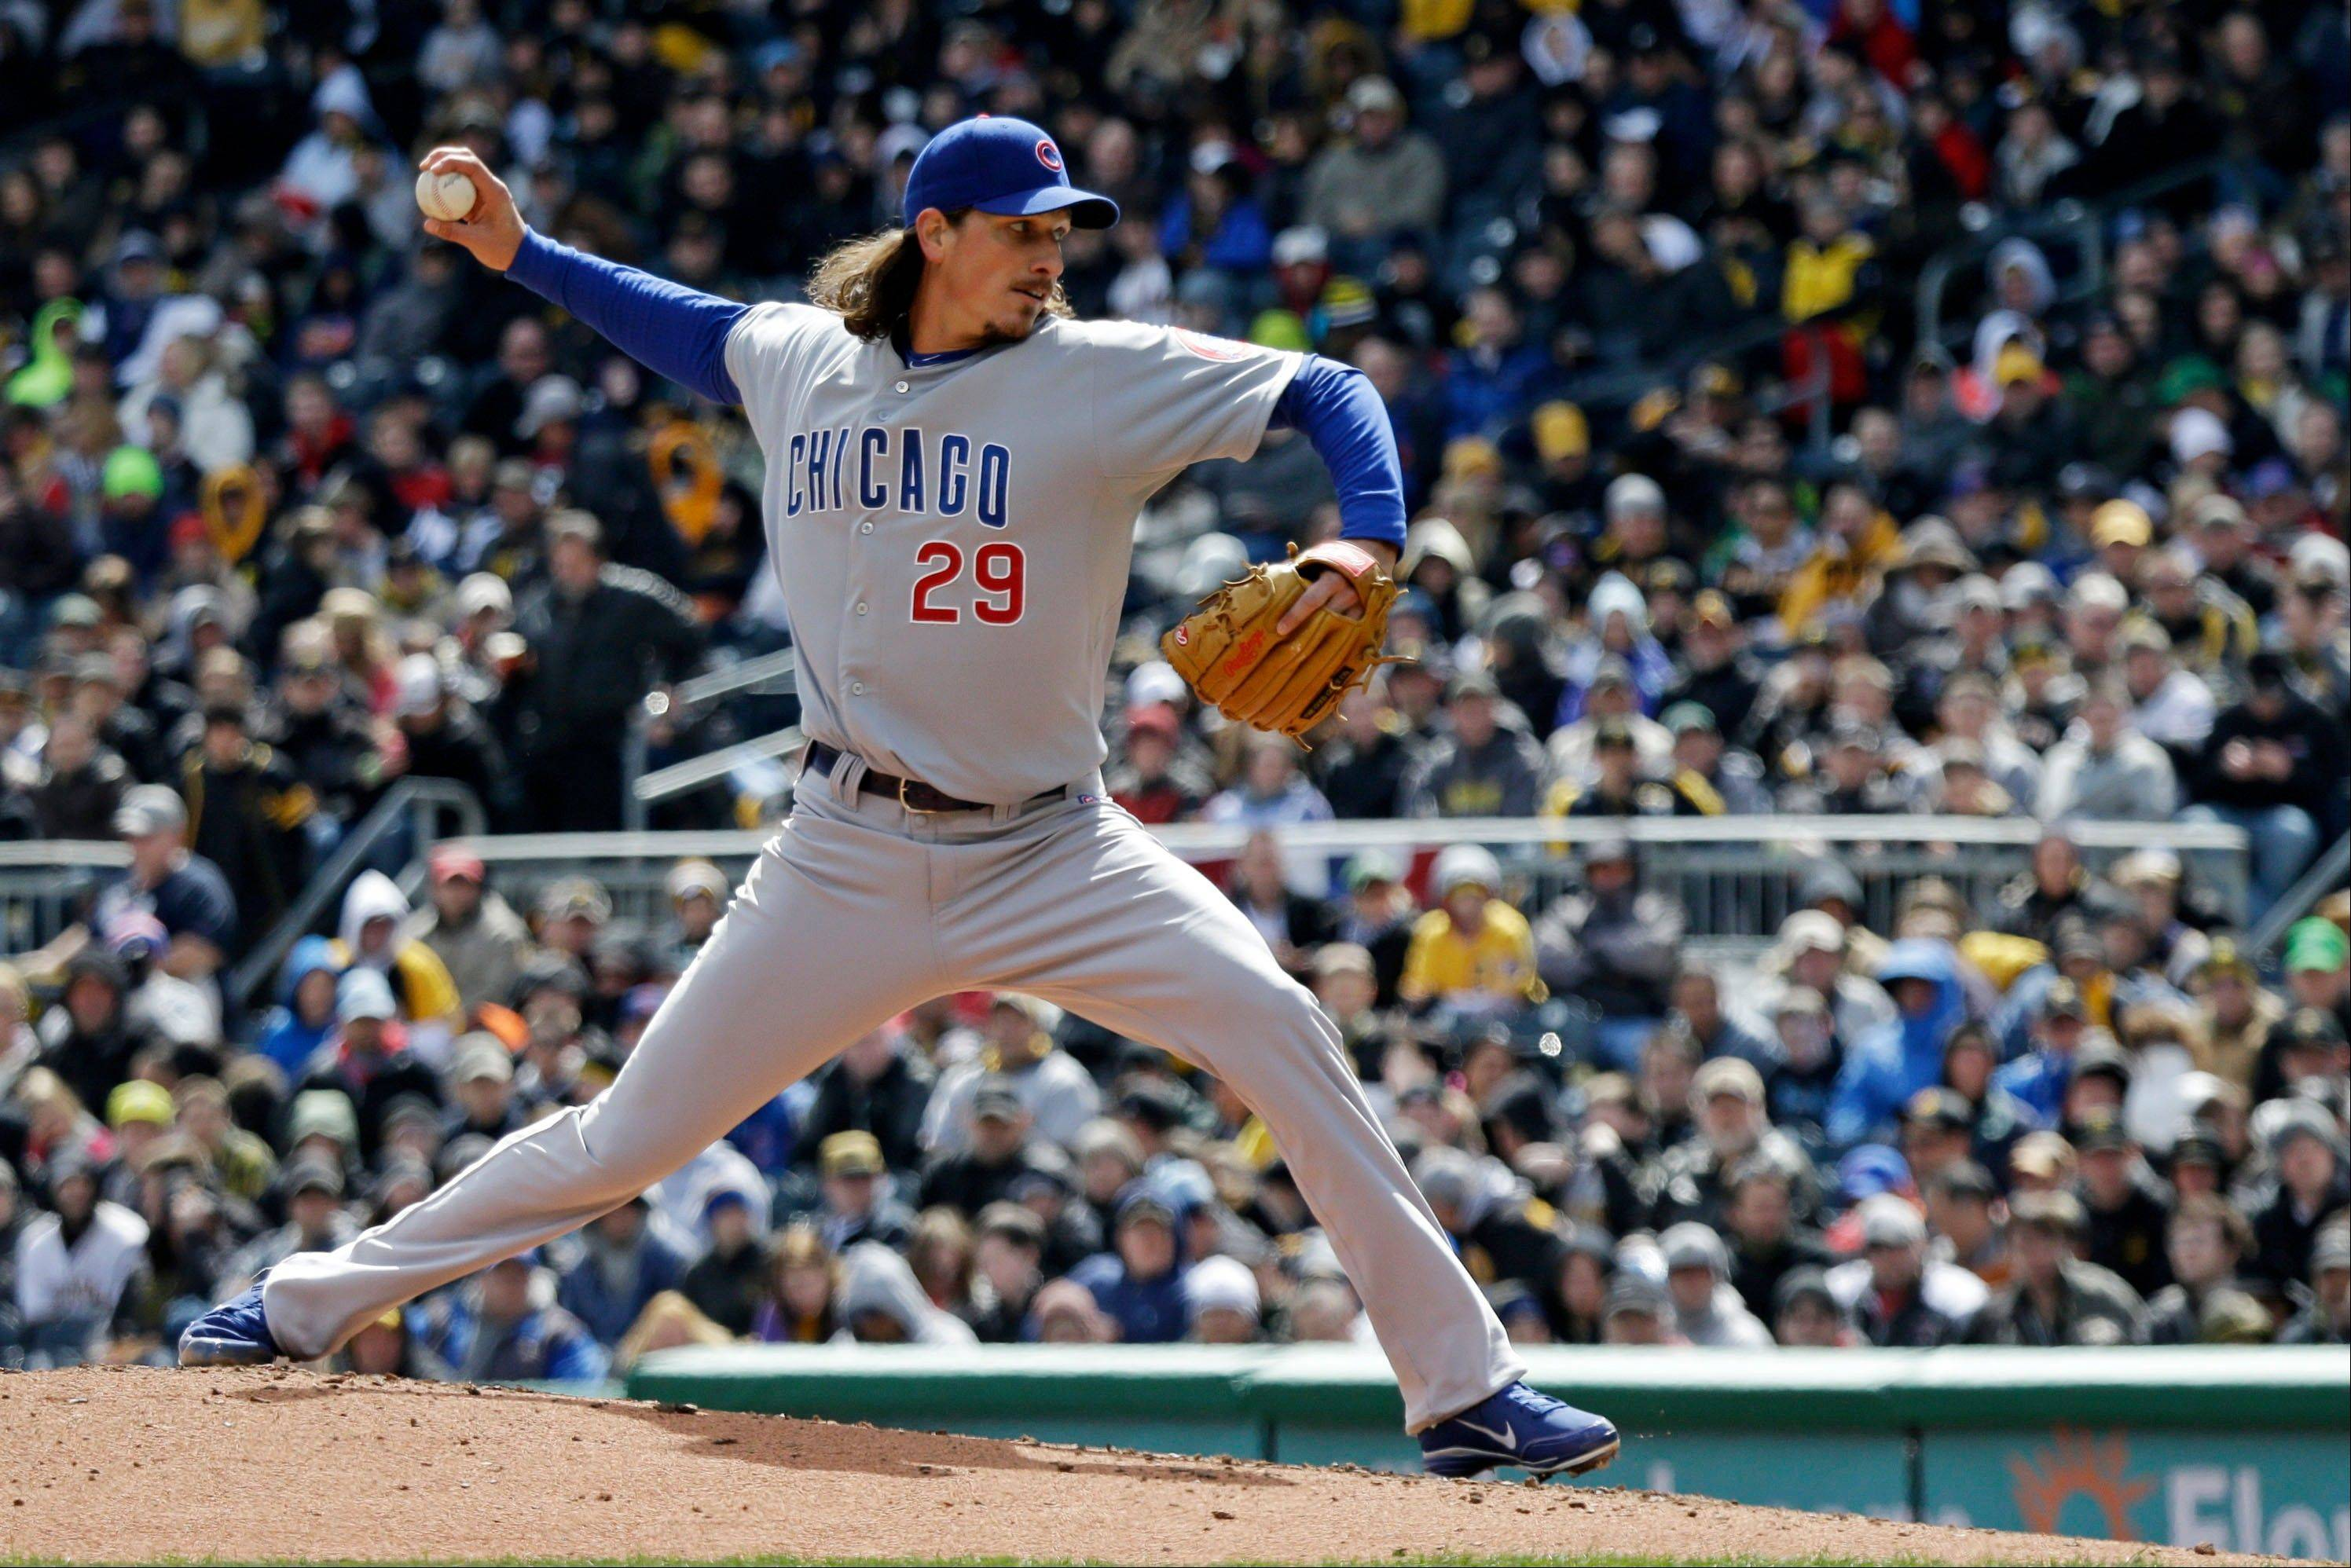 Jeff Samardzija got the Cubs off to a good start with his 3-1 victory Monday over the Pirates.